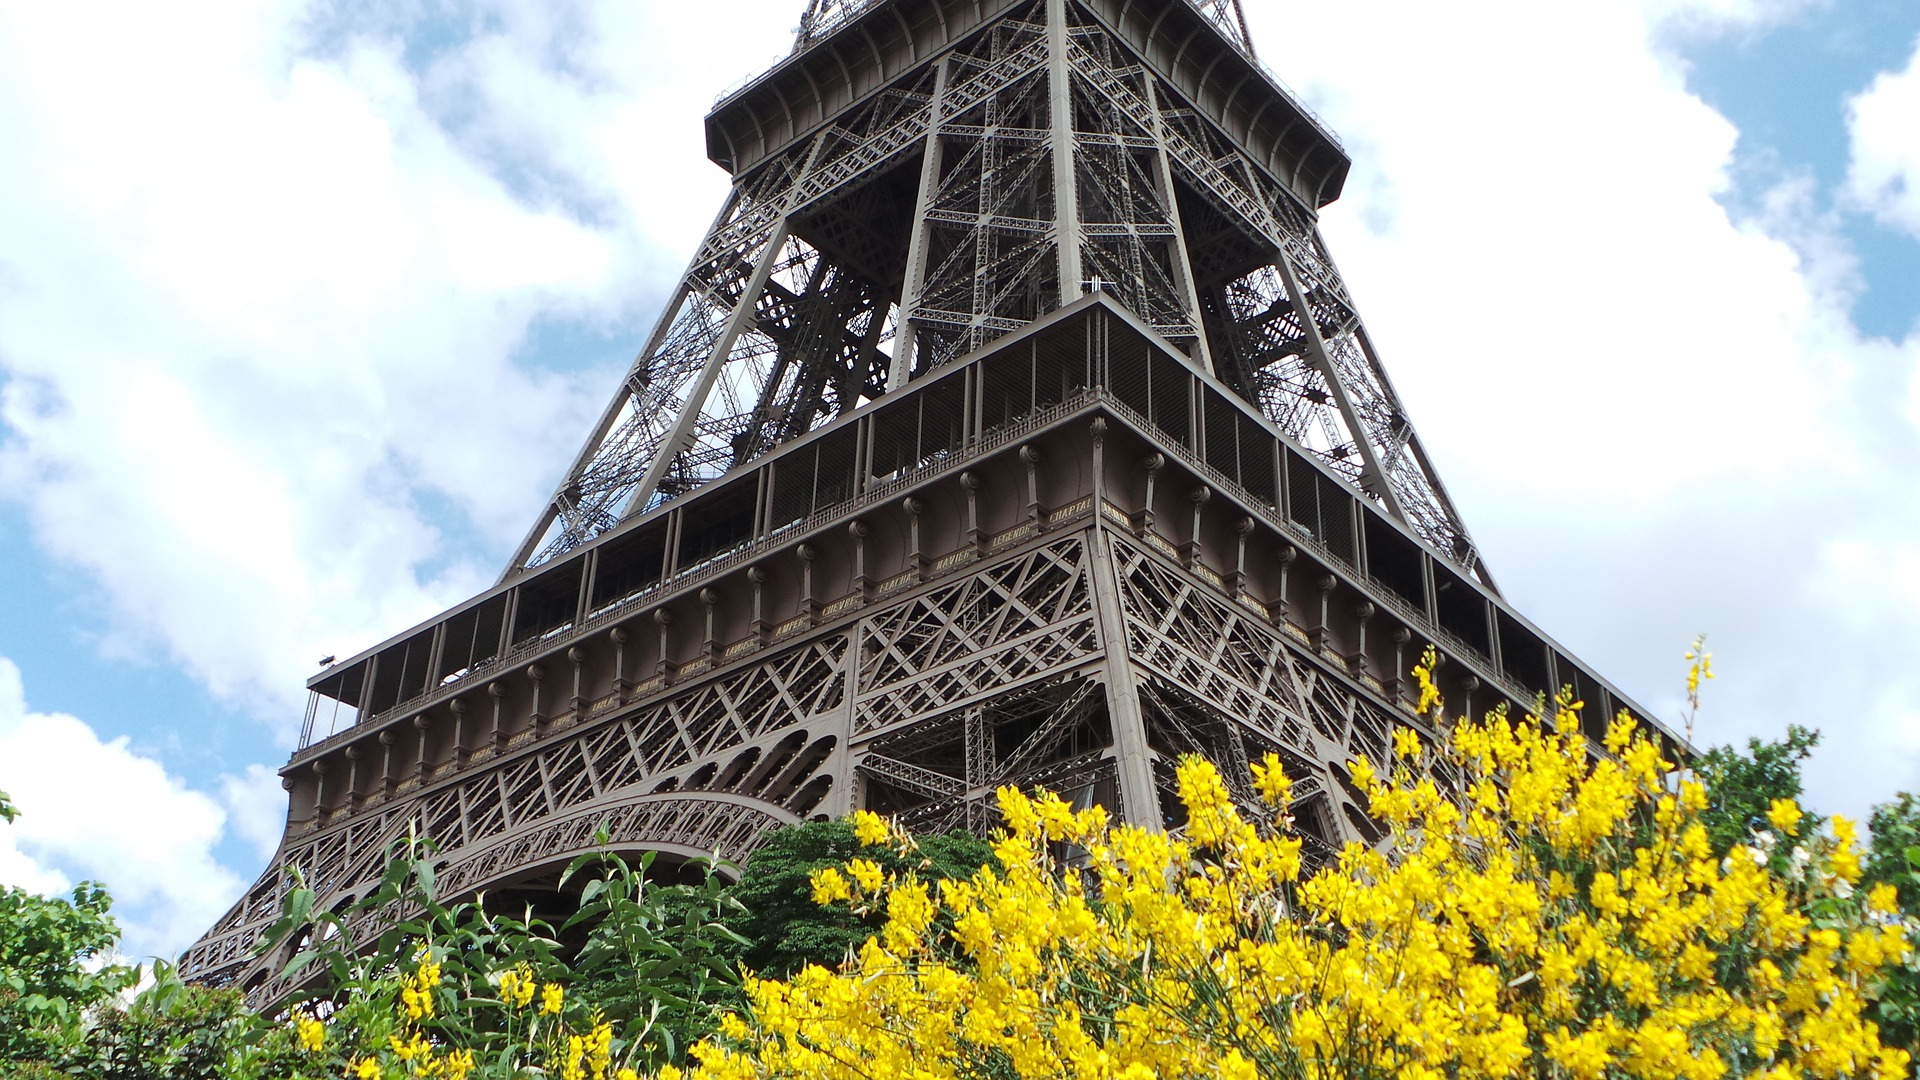 MyFrenchLife™ – MyFrenchLife.org - Paris in April - 2017 - Paris in spring - whats on - Eiffel Tower